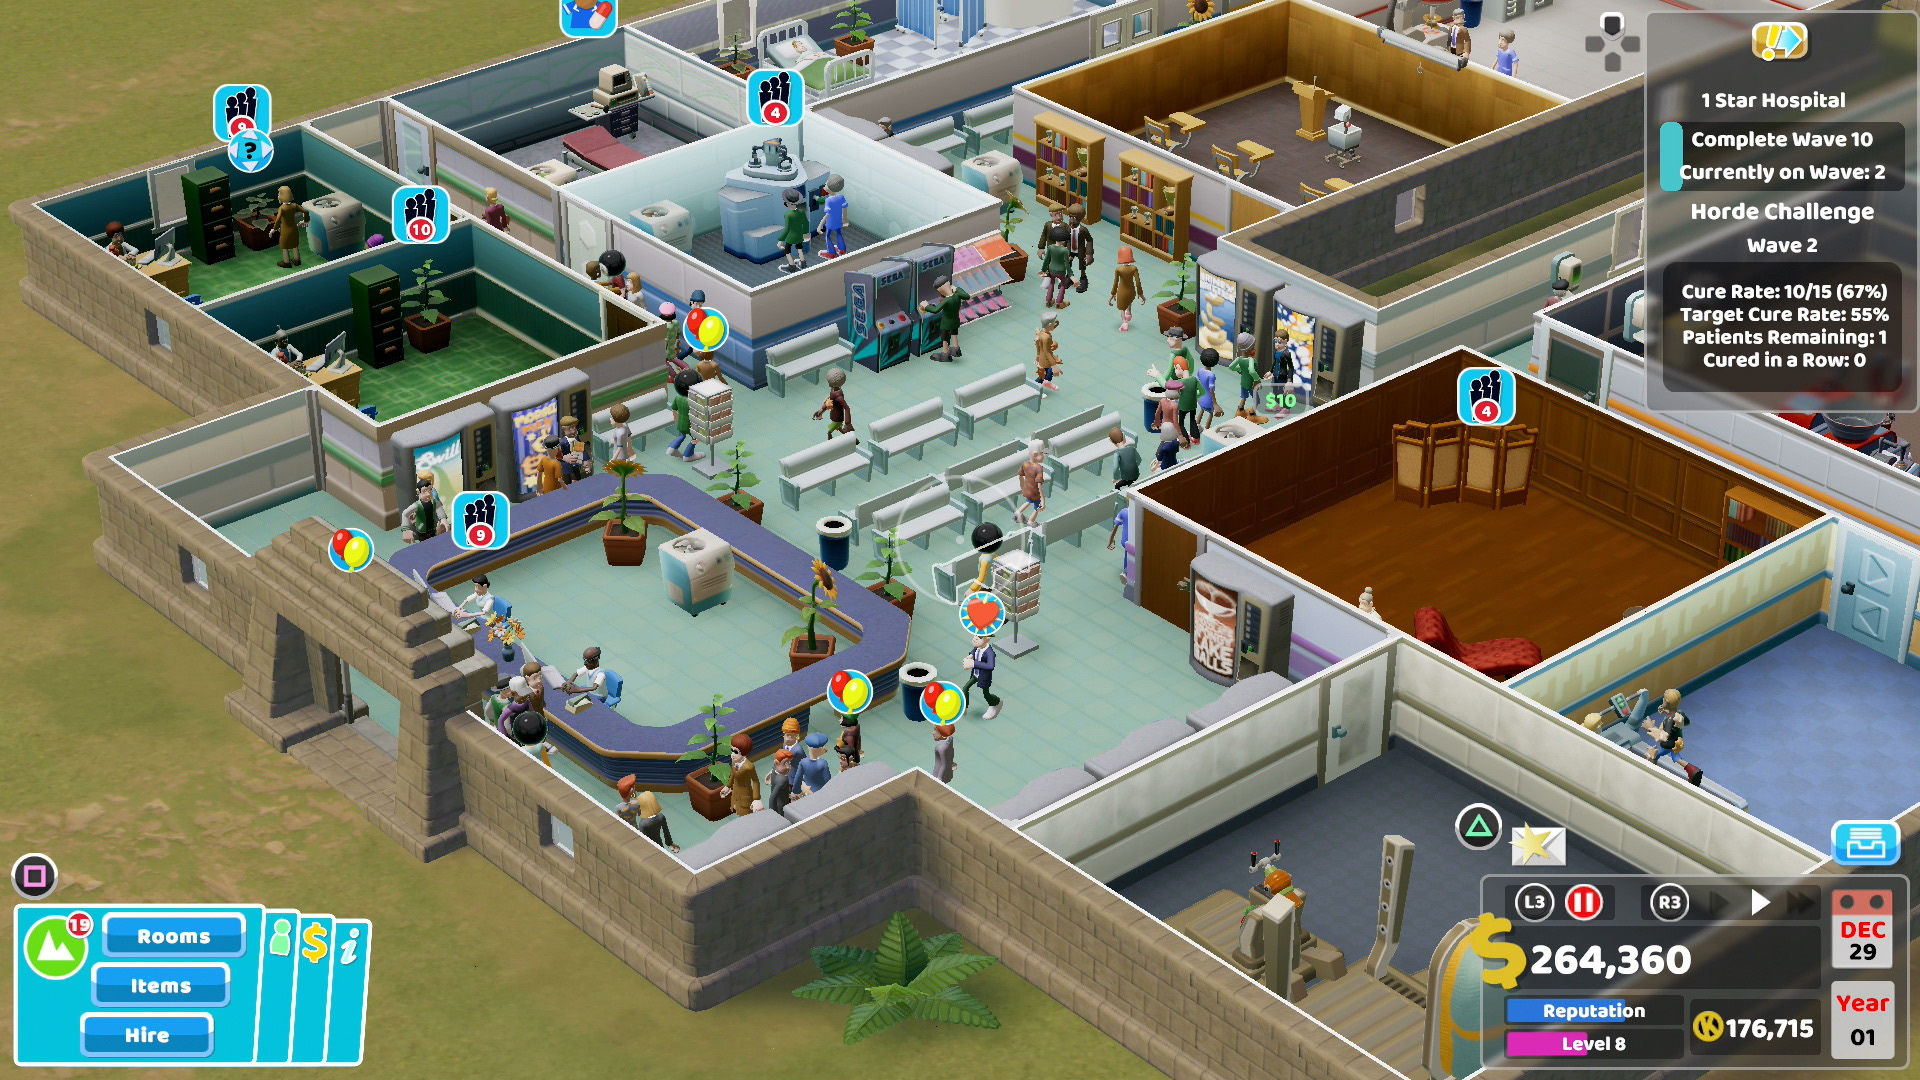 A screenshot of Two Point Hospital